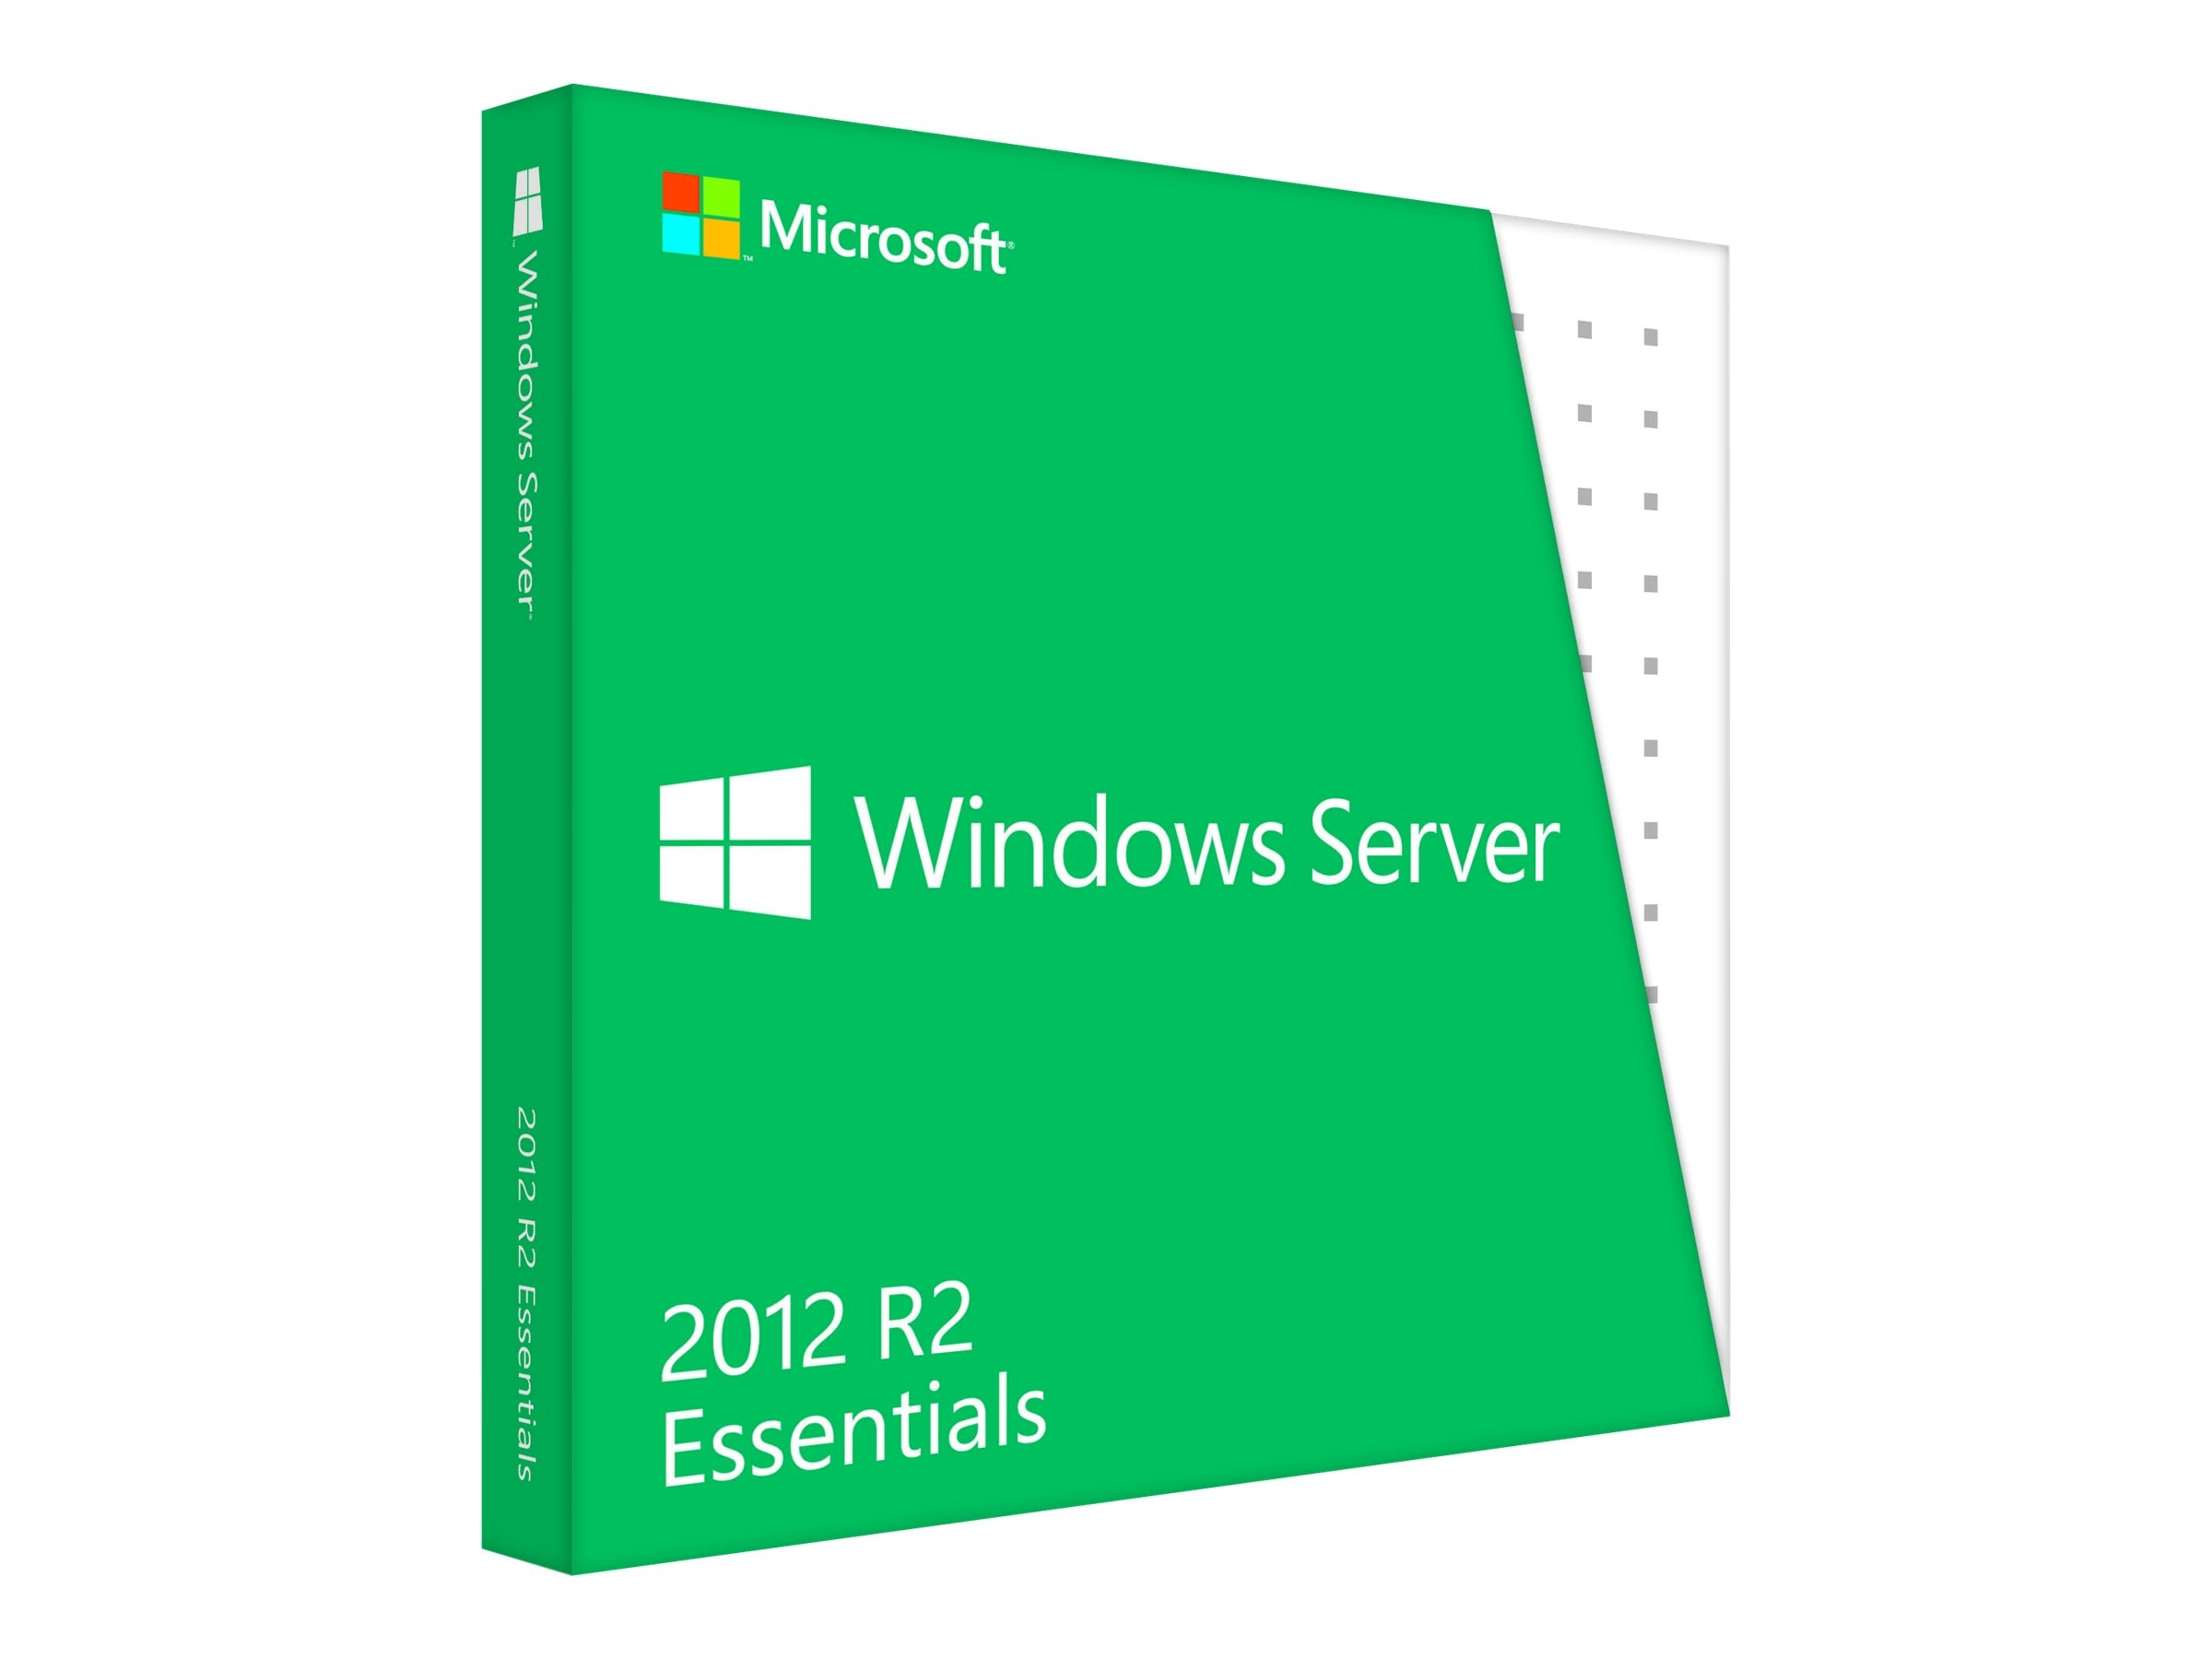 Microsoft Windows Server Essentials 2012 R2 64Bit DVD, G3S-00587, 16589139, Software - Operating Systems